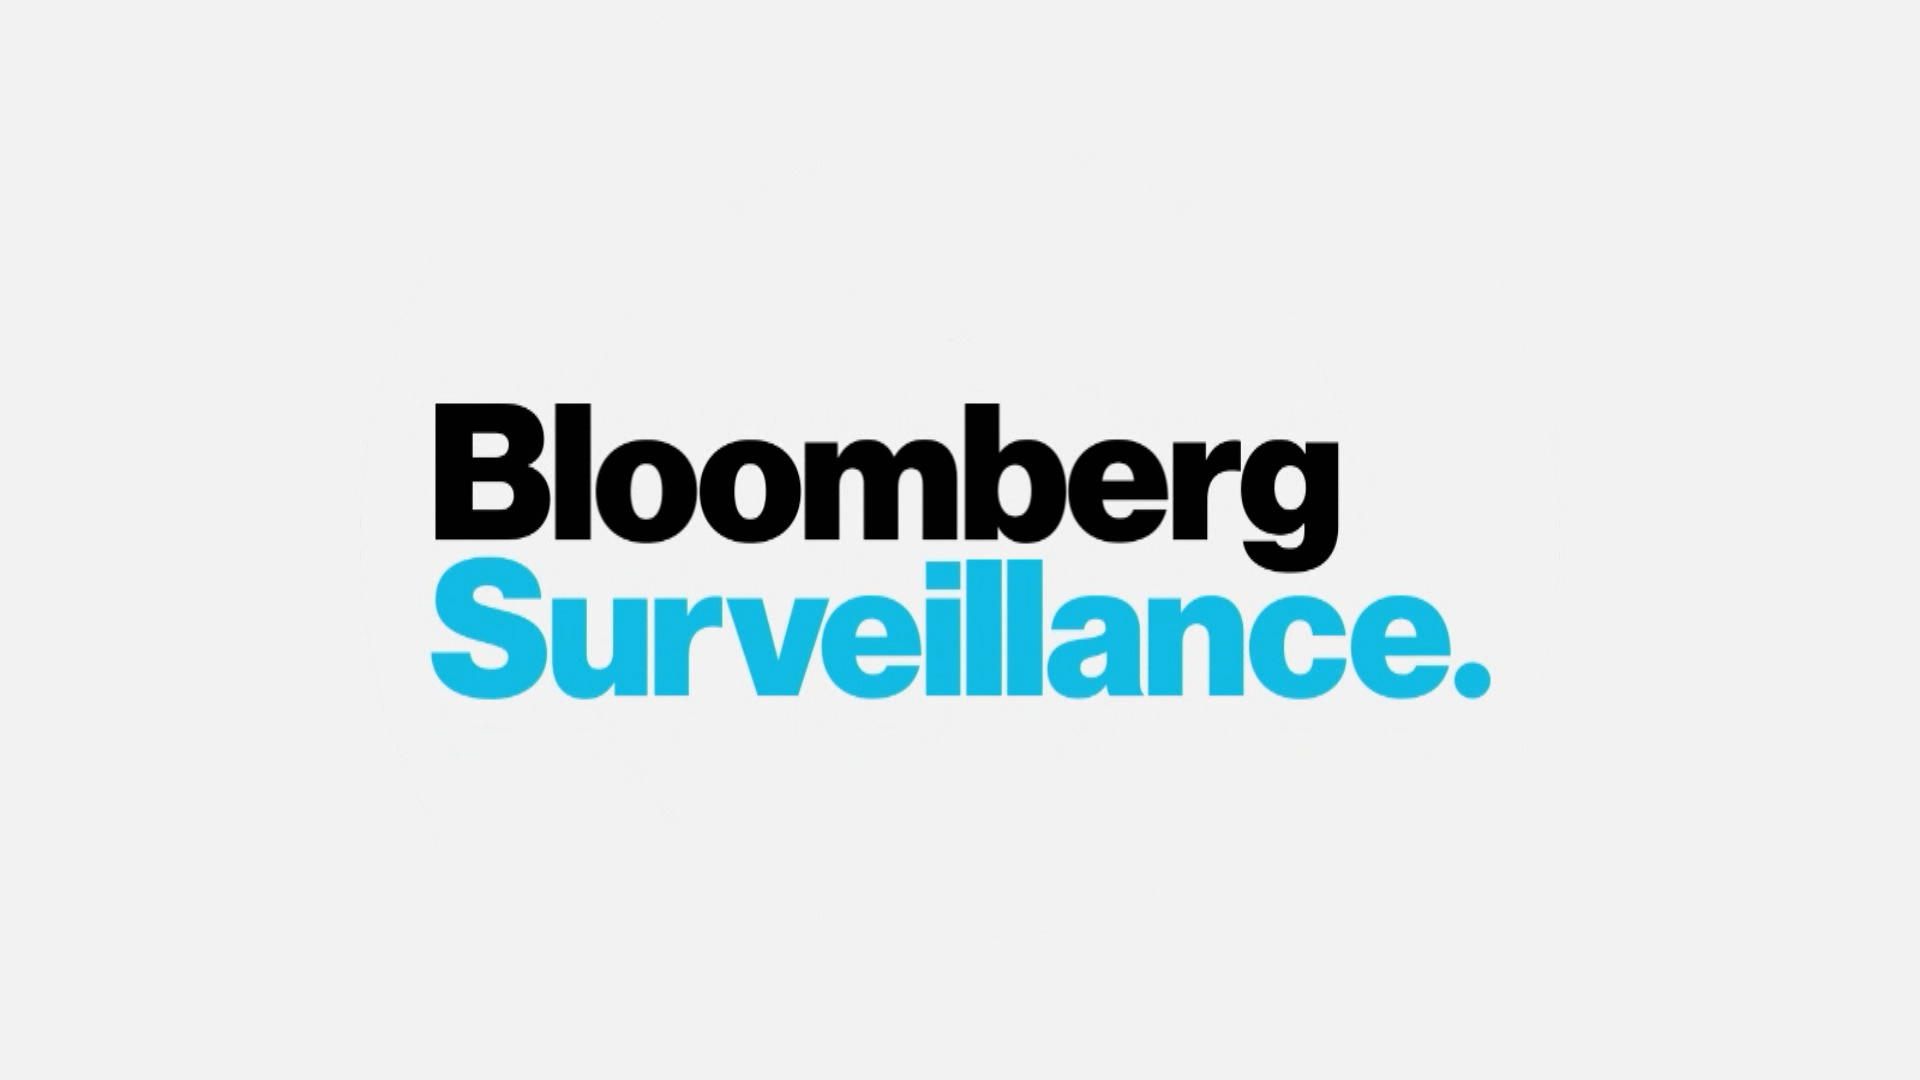 'Bloomberg Surveillance' - (11/13/2019) - Coverage of the U.K. election - Part 1